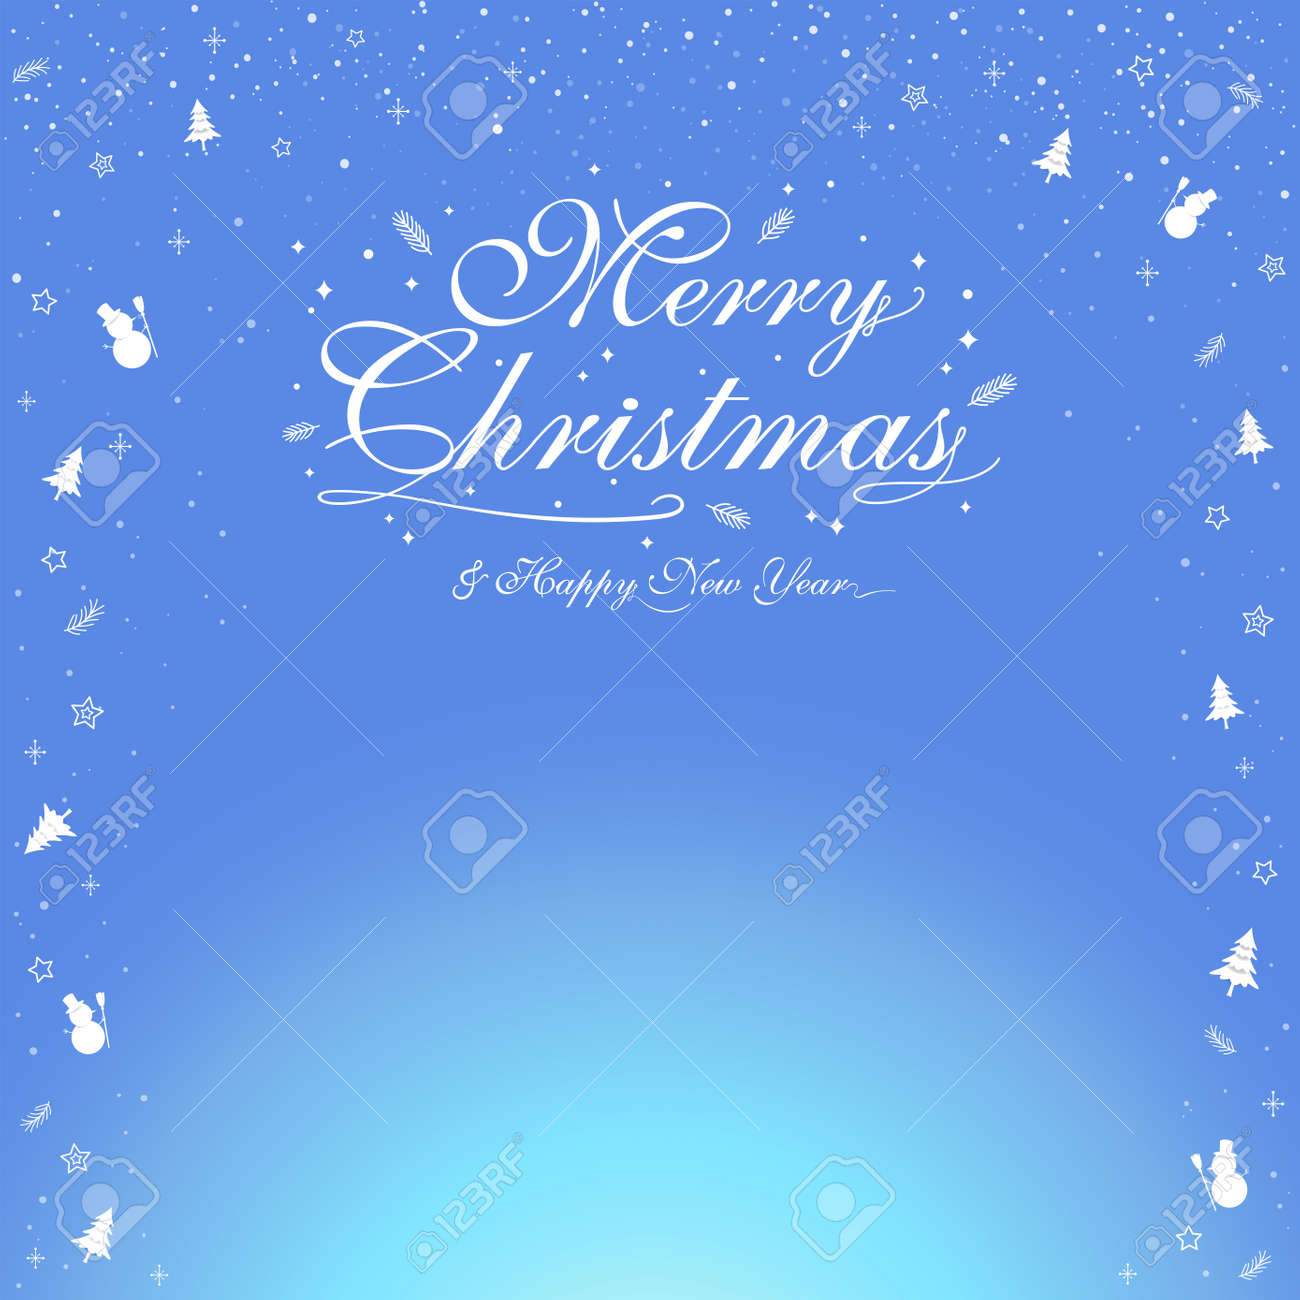 Merry Christmas banner poster template with festive elements border; snowman, pine tree - 160158687